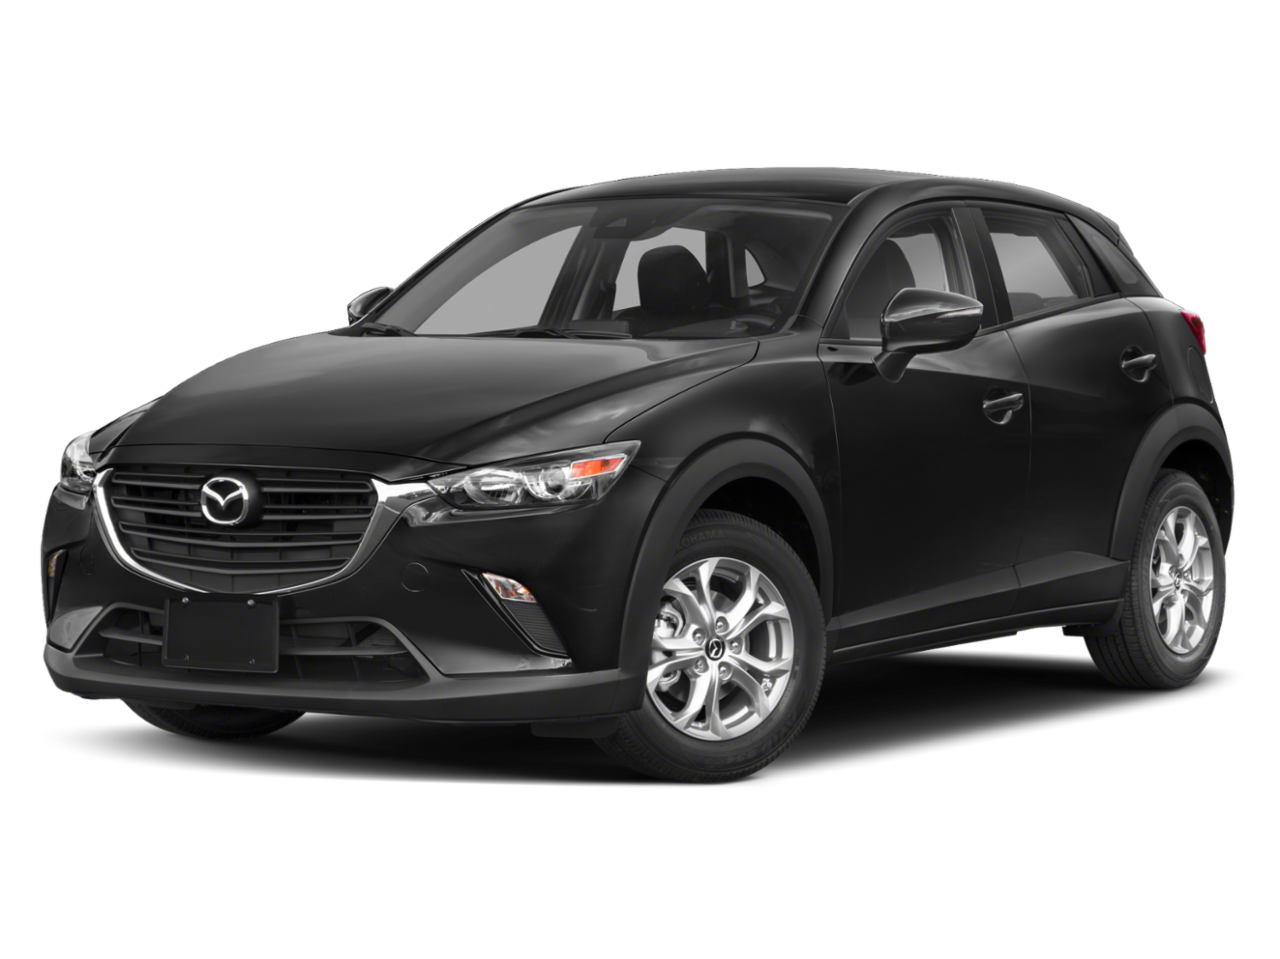 Buyer's Guide: 2019 Mazda CX-3